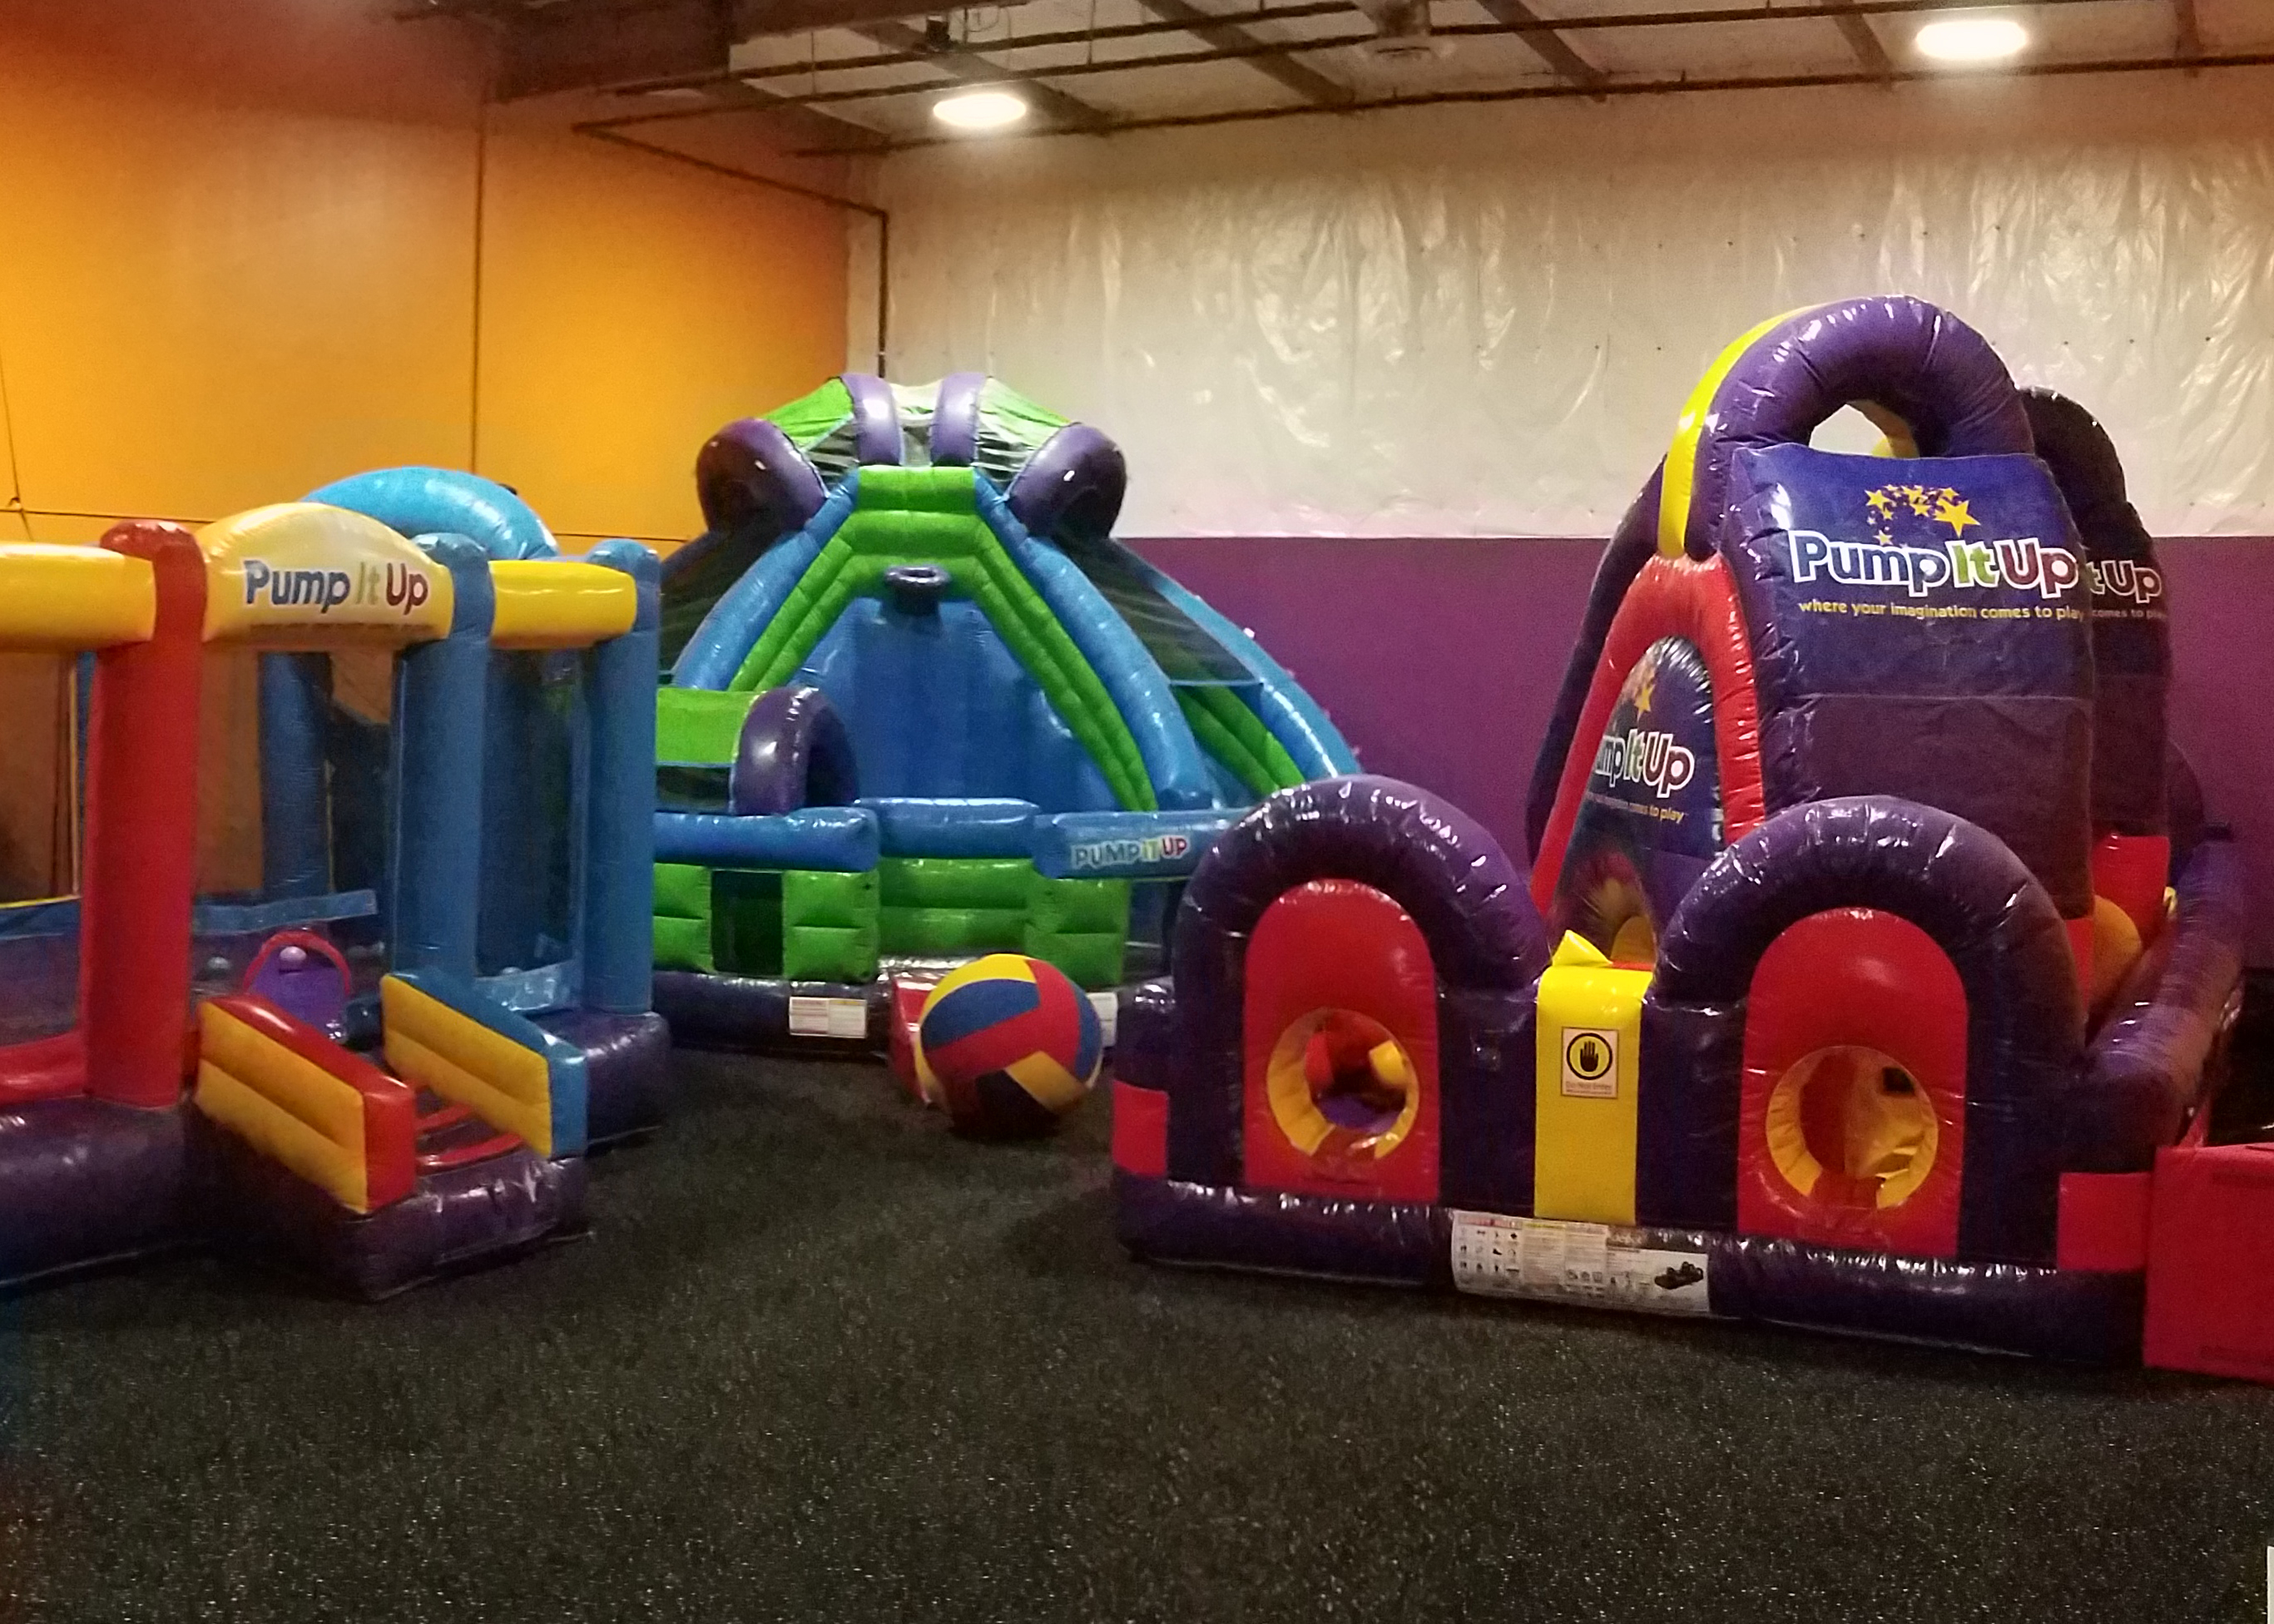 Lynnwood Arena A for private parties and lots of fun for kids on giant inflatables